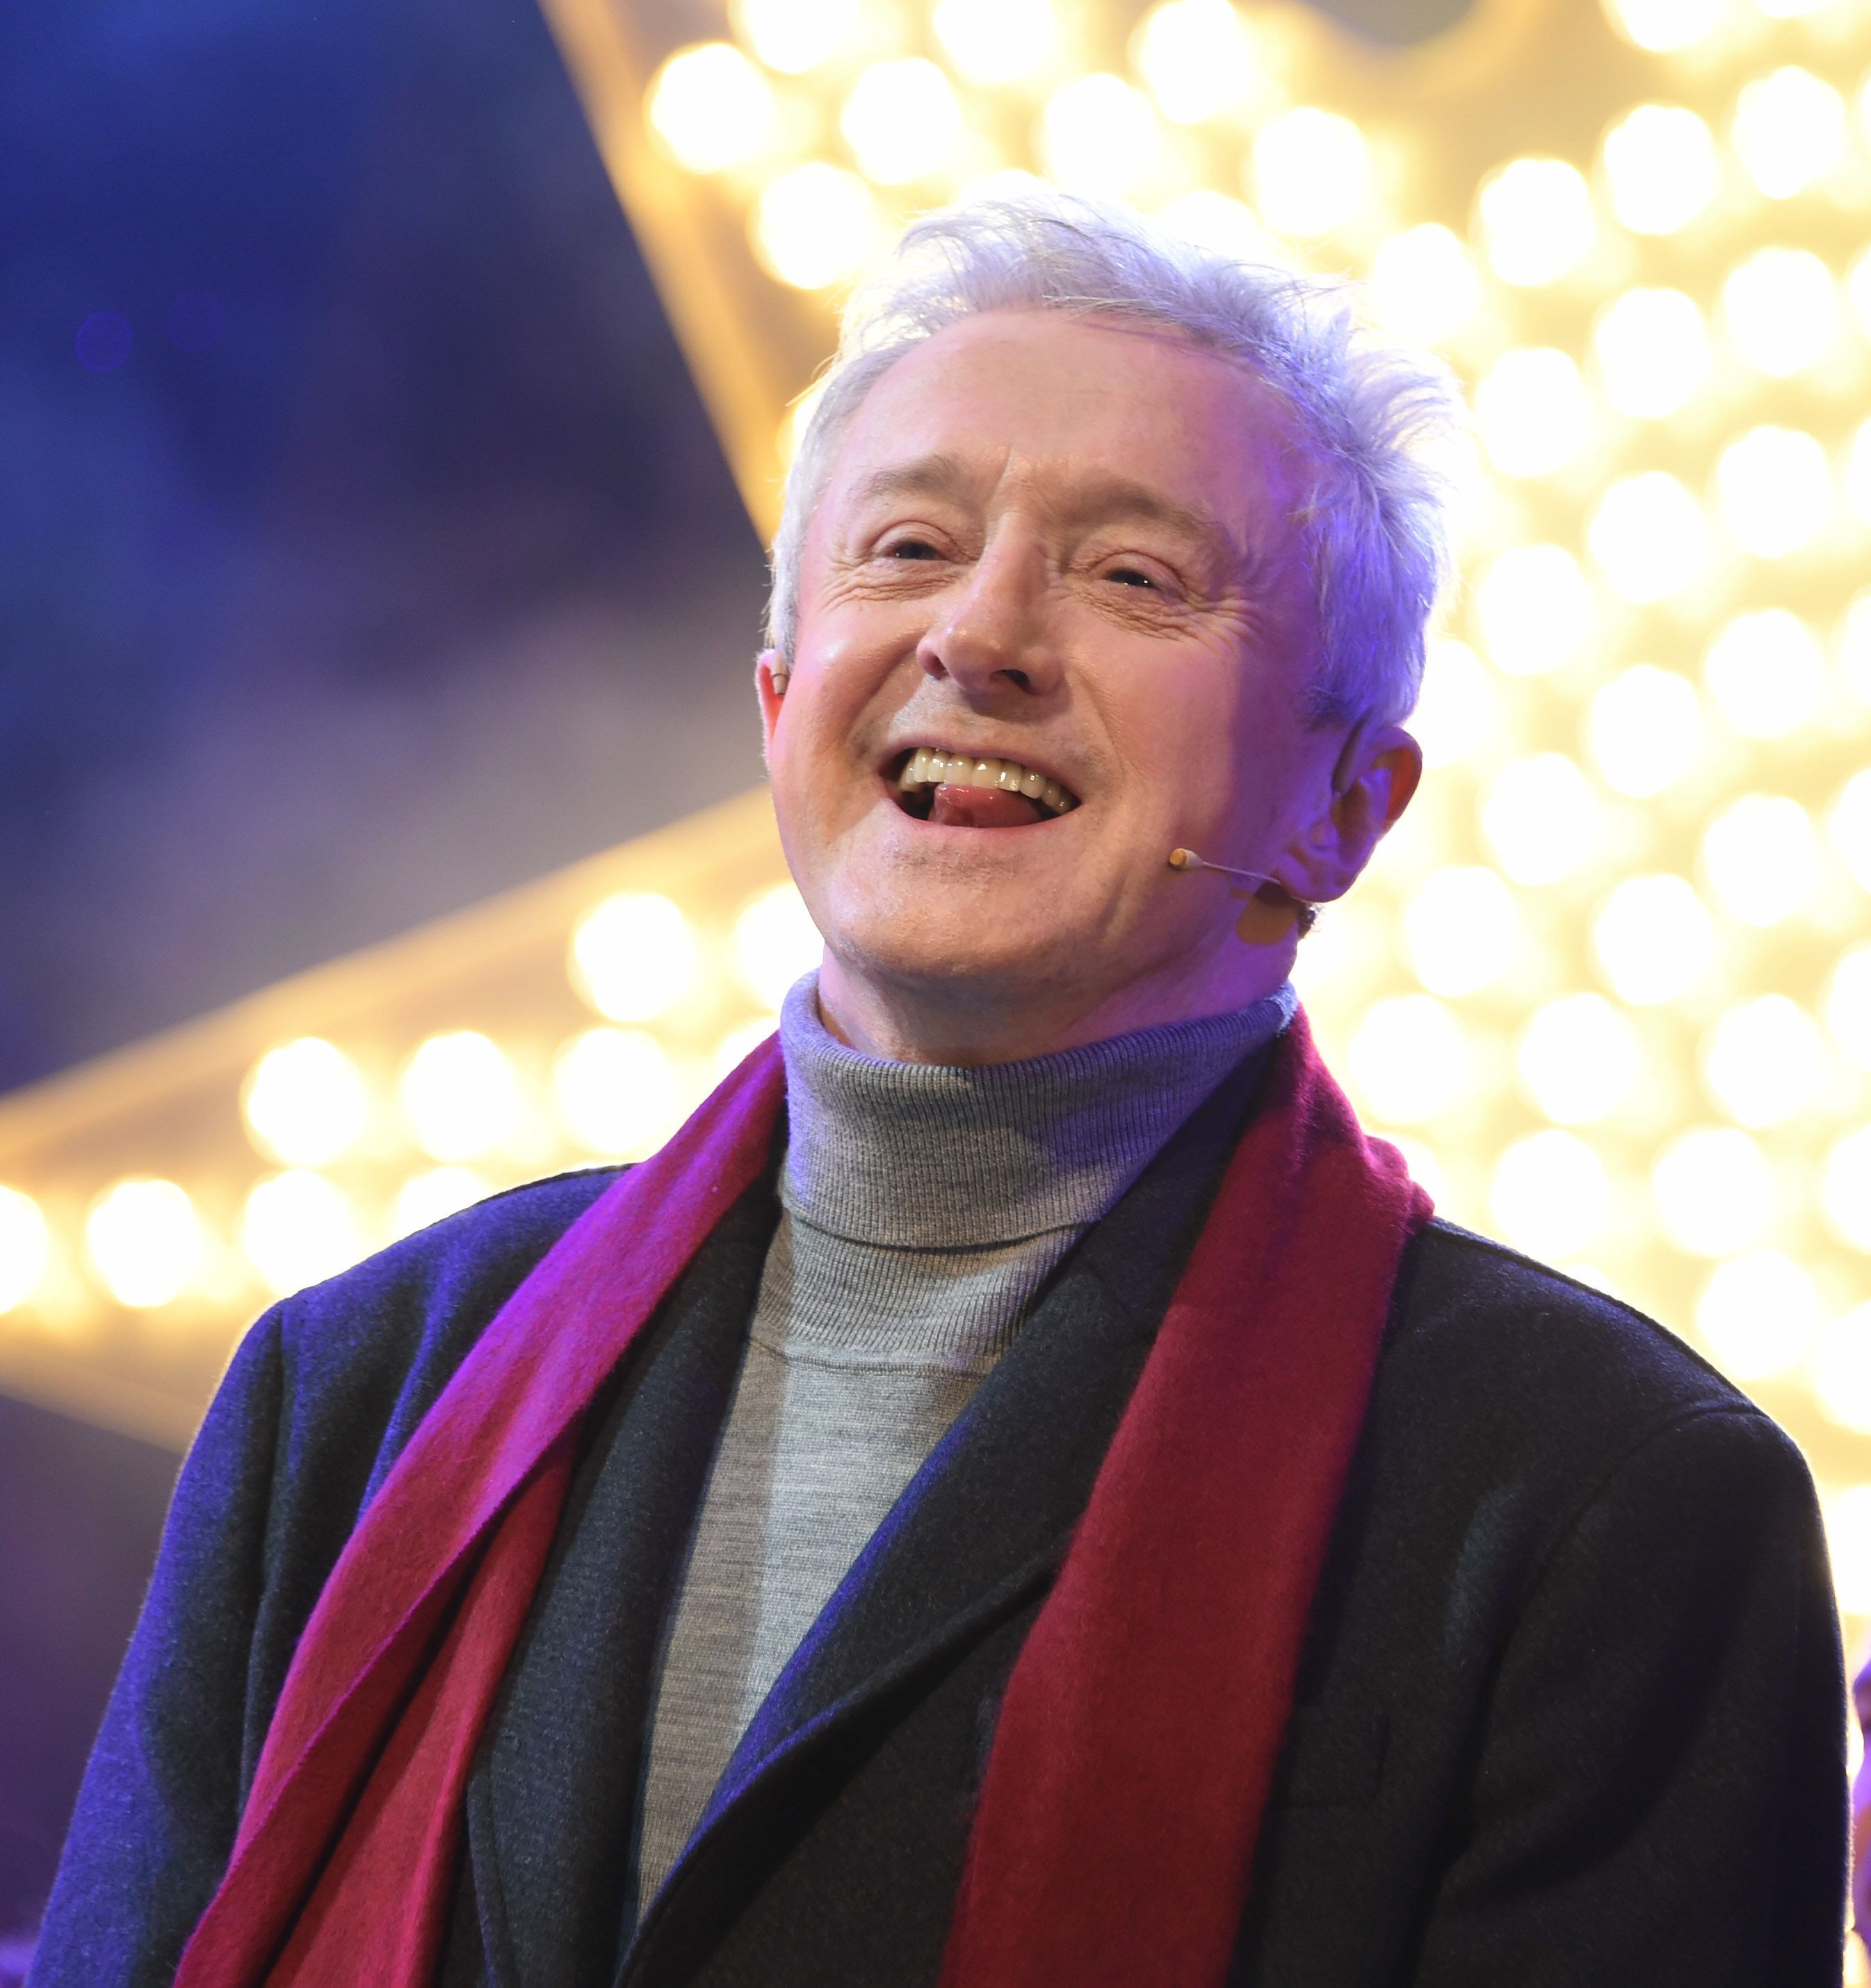 Louis Walsh Insists His 'X Factor' Contract Is 'Watertight' As He Responds To Axe